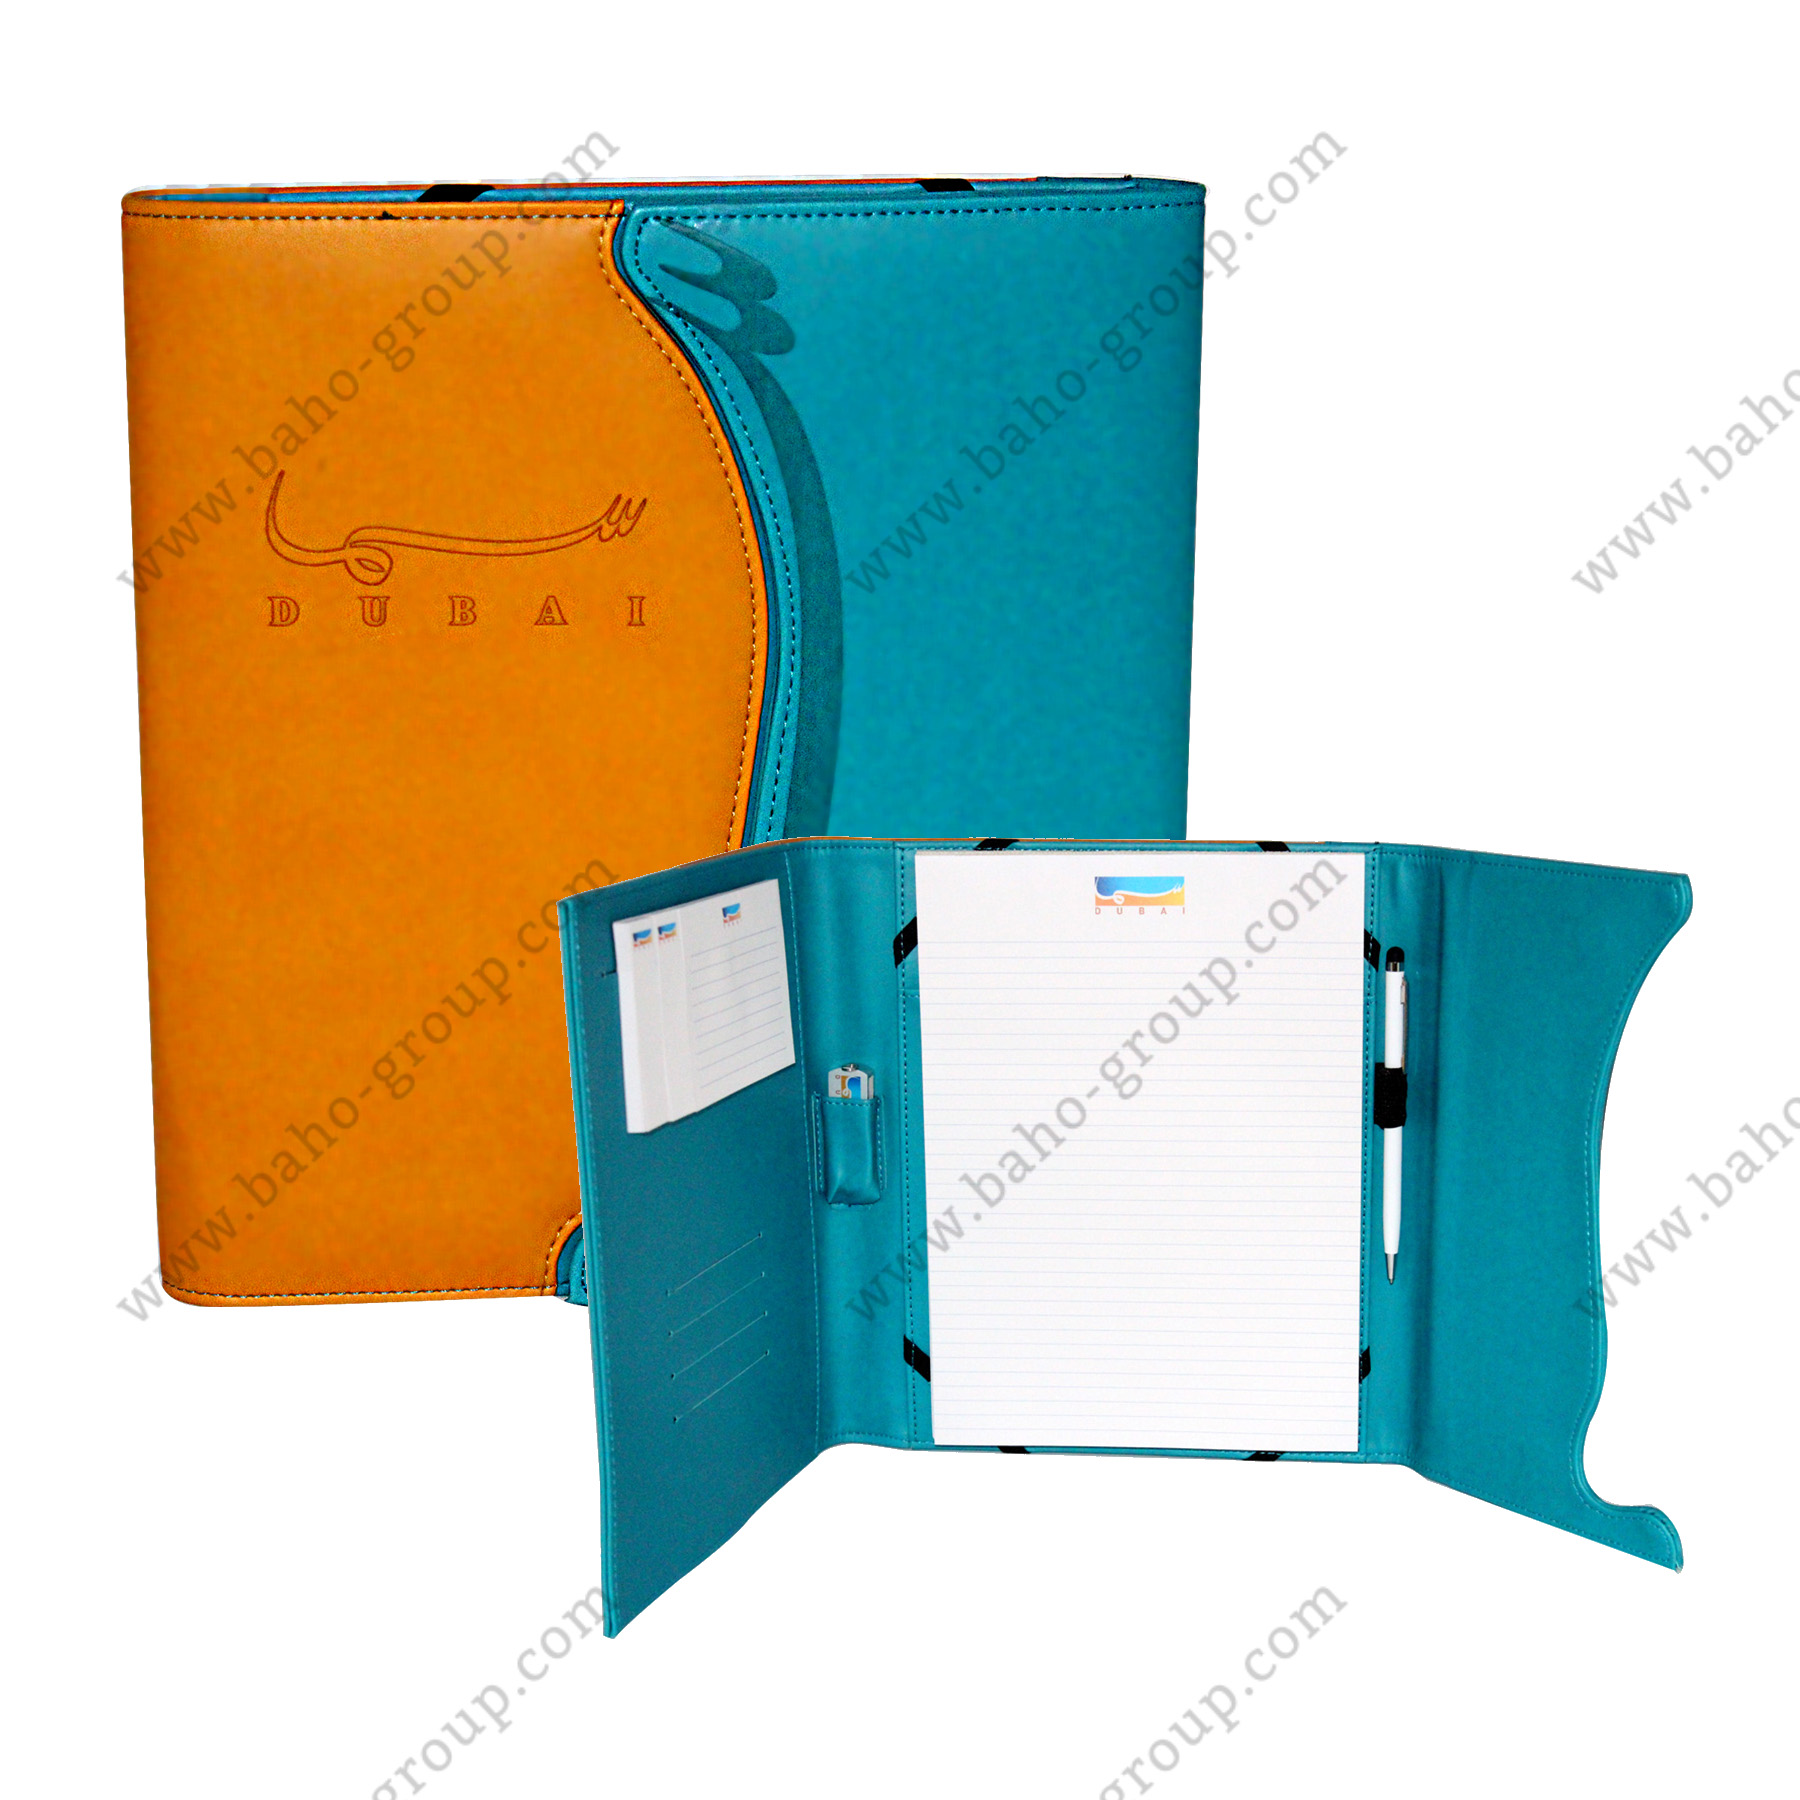 Dubai Media Inc. Special shaped opening iPad Holder organizer